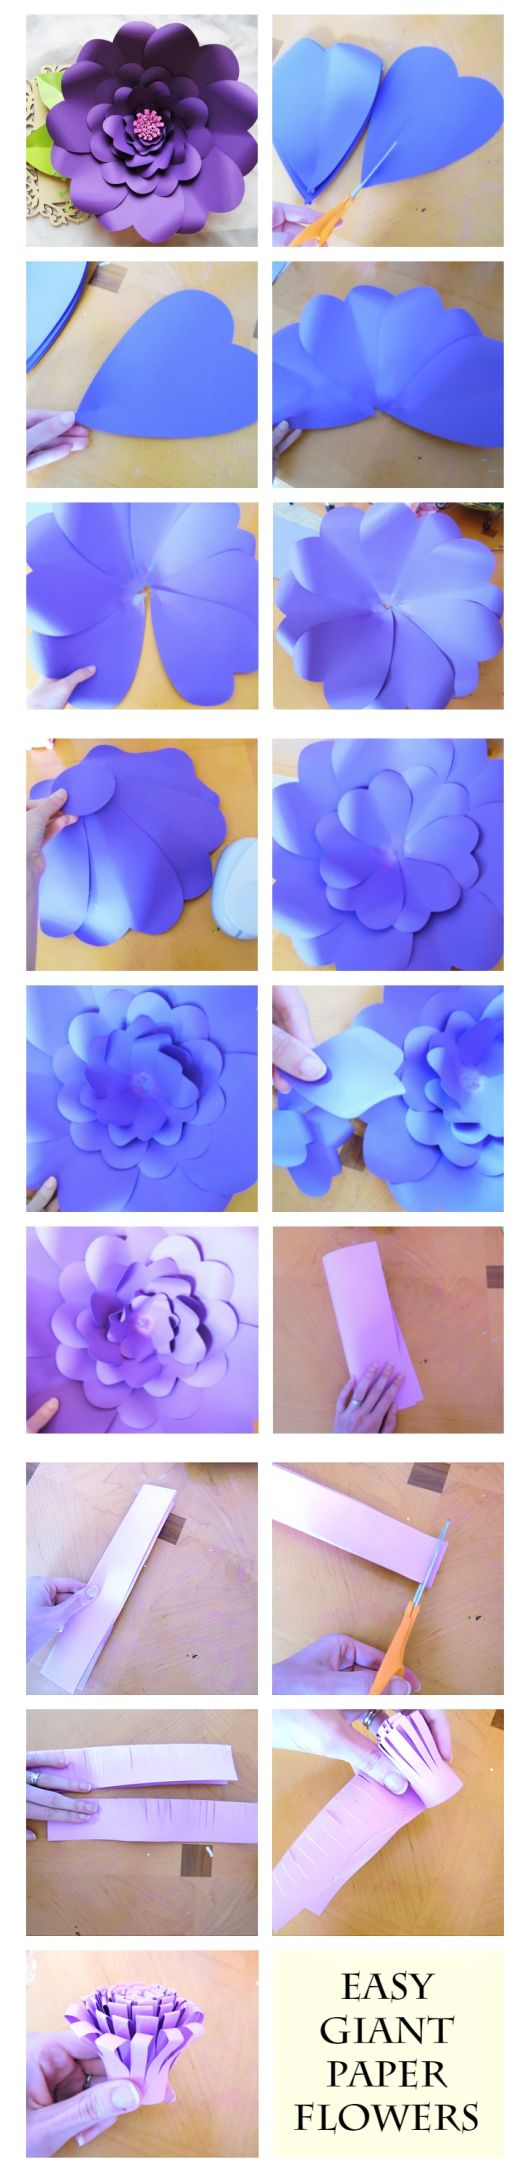 How to make giant paper flowers with templates.